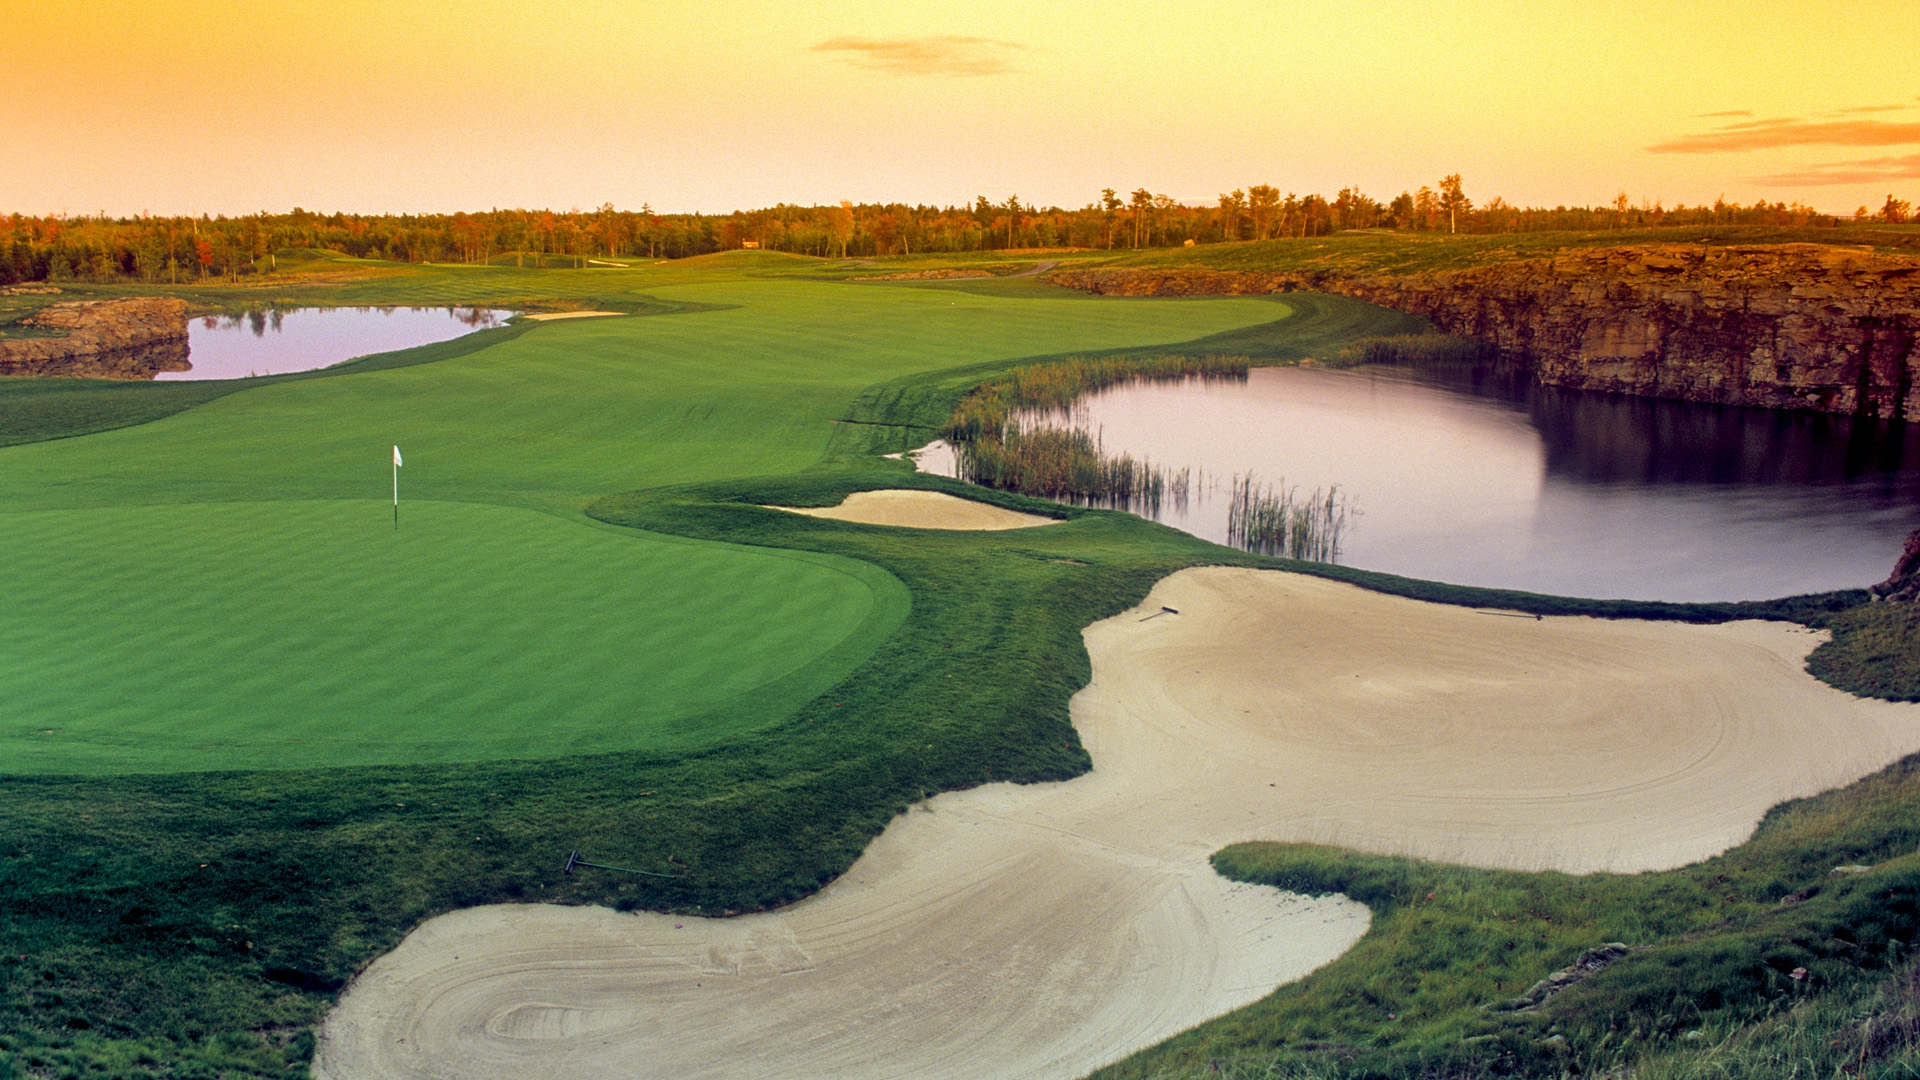 golf wallpaper backgrounds pics cool images download free 4k ...